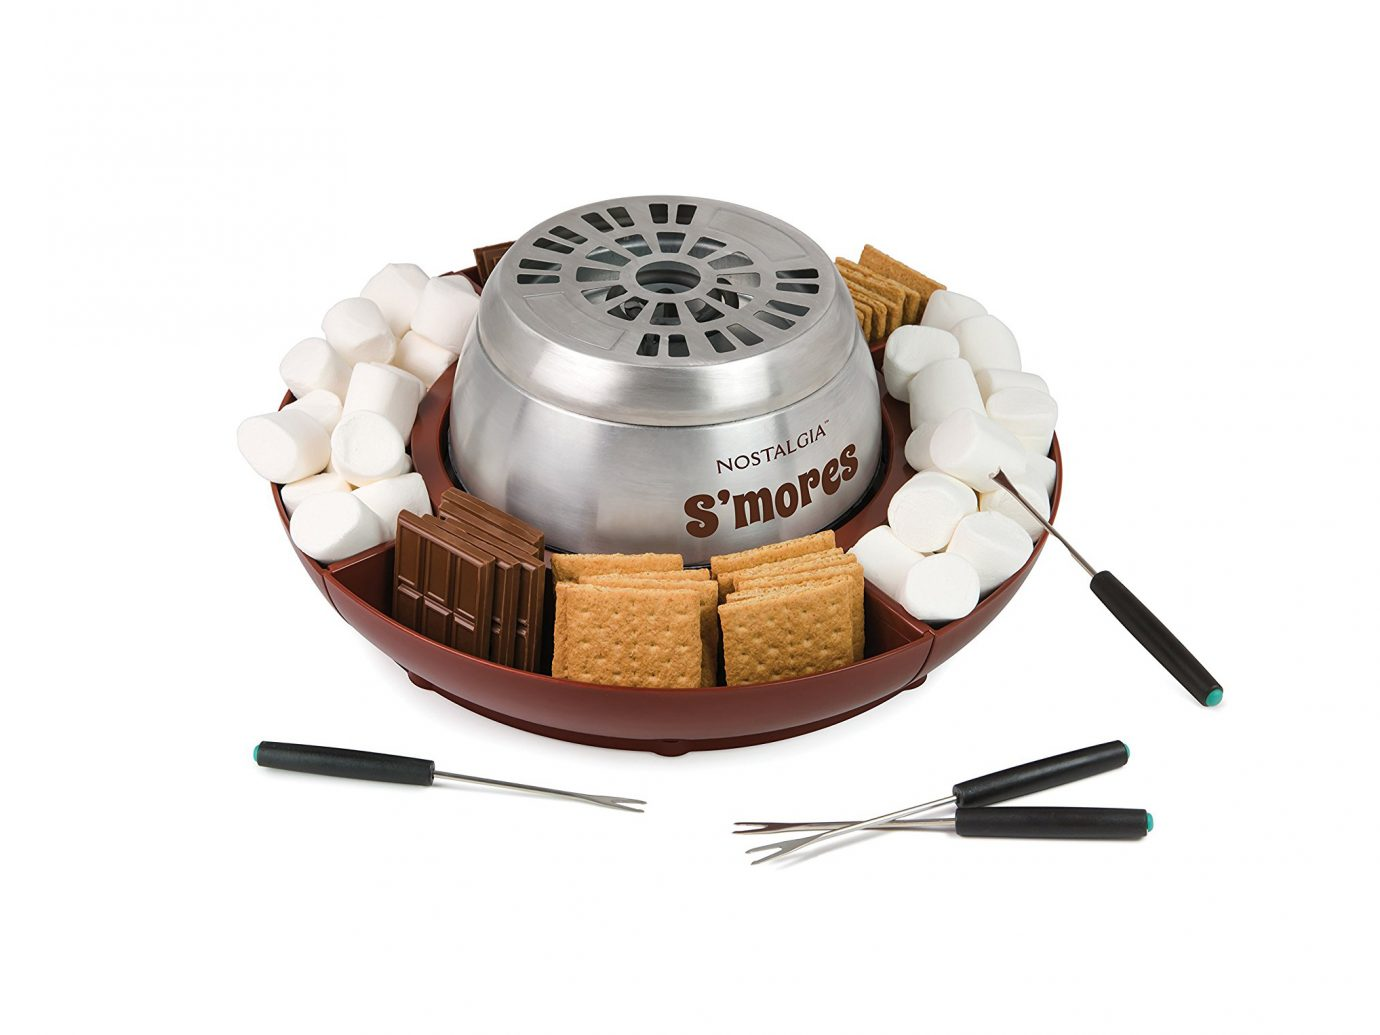 S'mores Maker: Nostalgia LSM400 Electric S'mores Maker